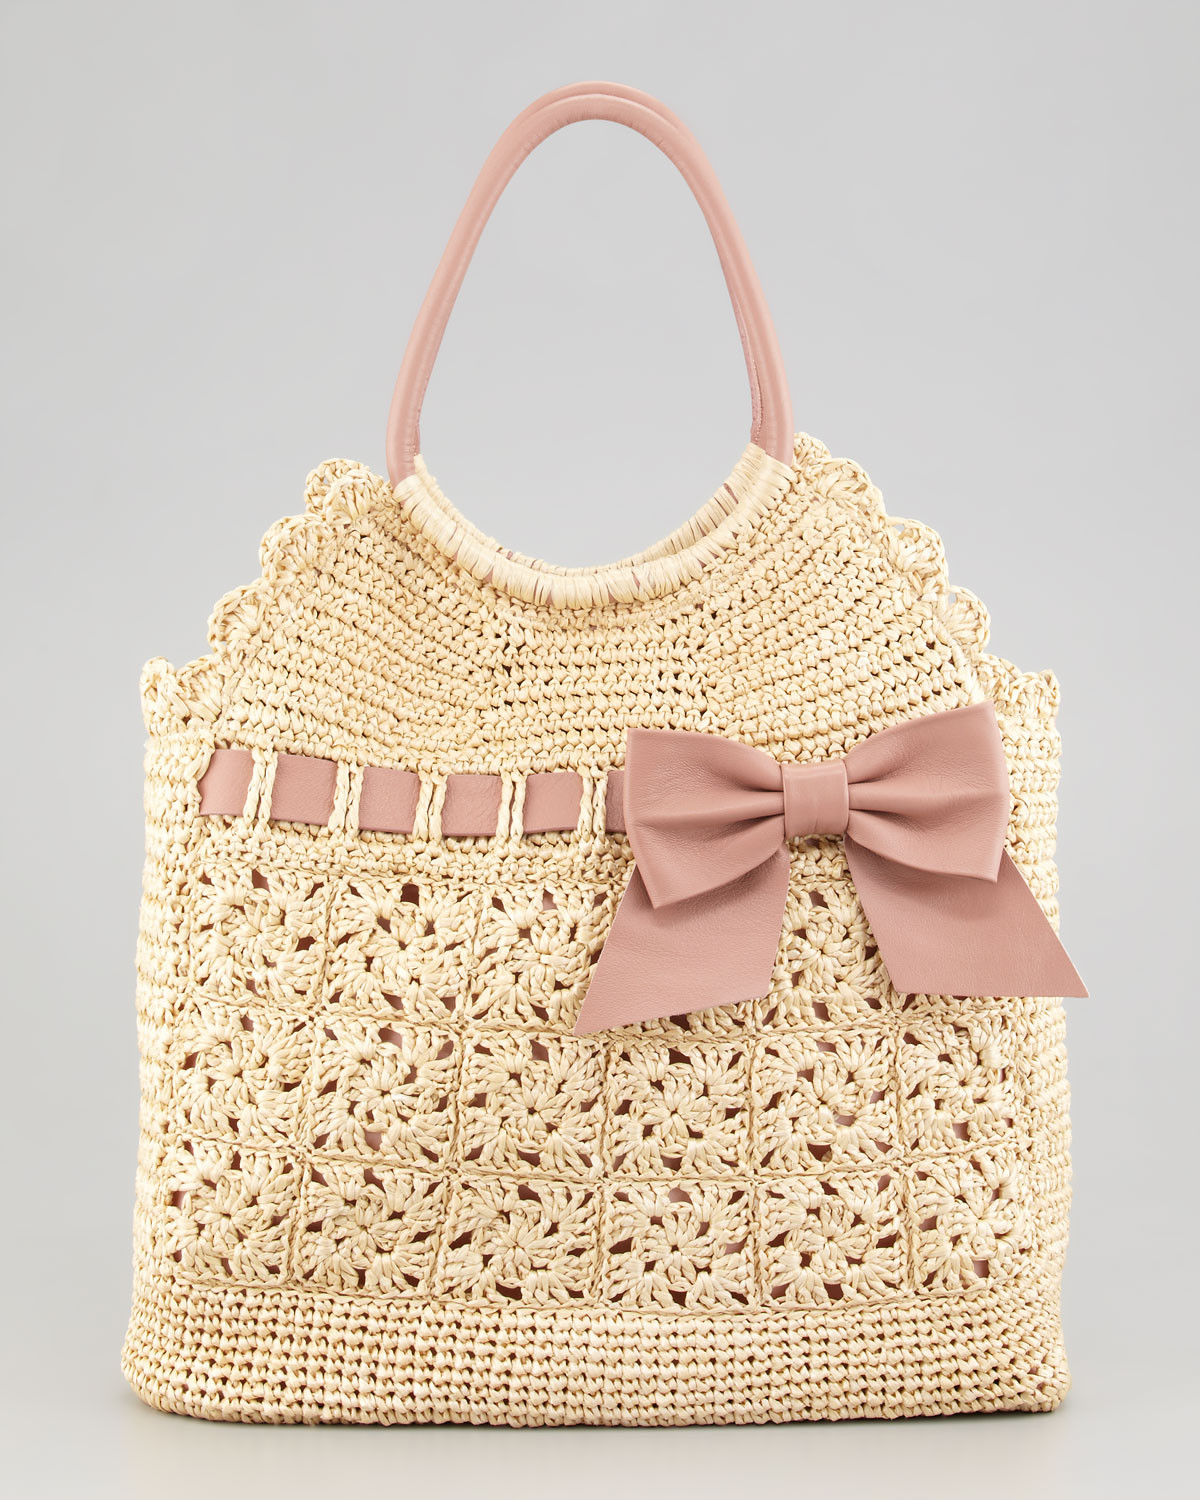 Crochet Purses Inspirational Red Valentino Leather and Crochet Raffia tote Bag In Of Luxury 41 Pictures Crochet Purses